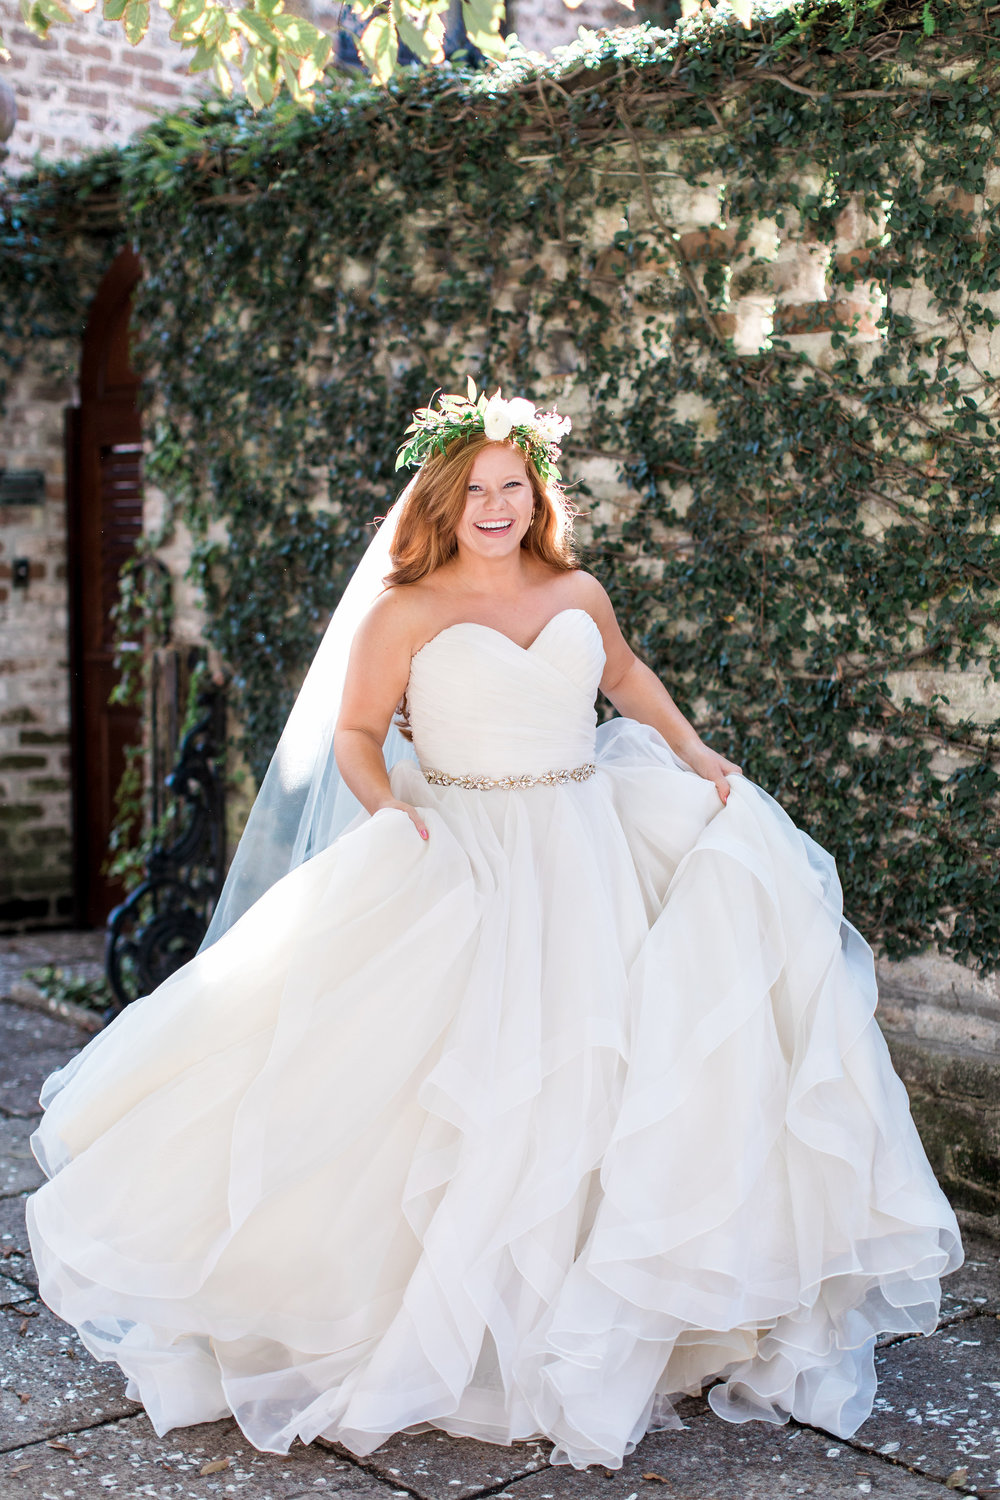 apt-b-photography-mary-elizabeths-bridal-boutique-adele-amelia-accessories-morilee-5504-savannah-bridal-boutique-savannah-weddings-savannah-wedding-photographer-savannah-bridal-gowns-savannah-wedding-dresses-historic-savannah-wedding-5.jpg